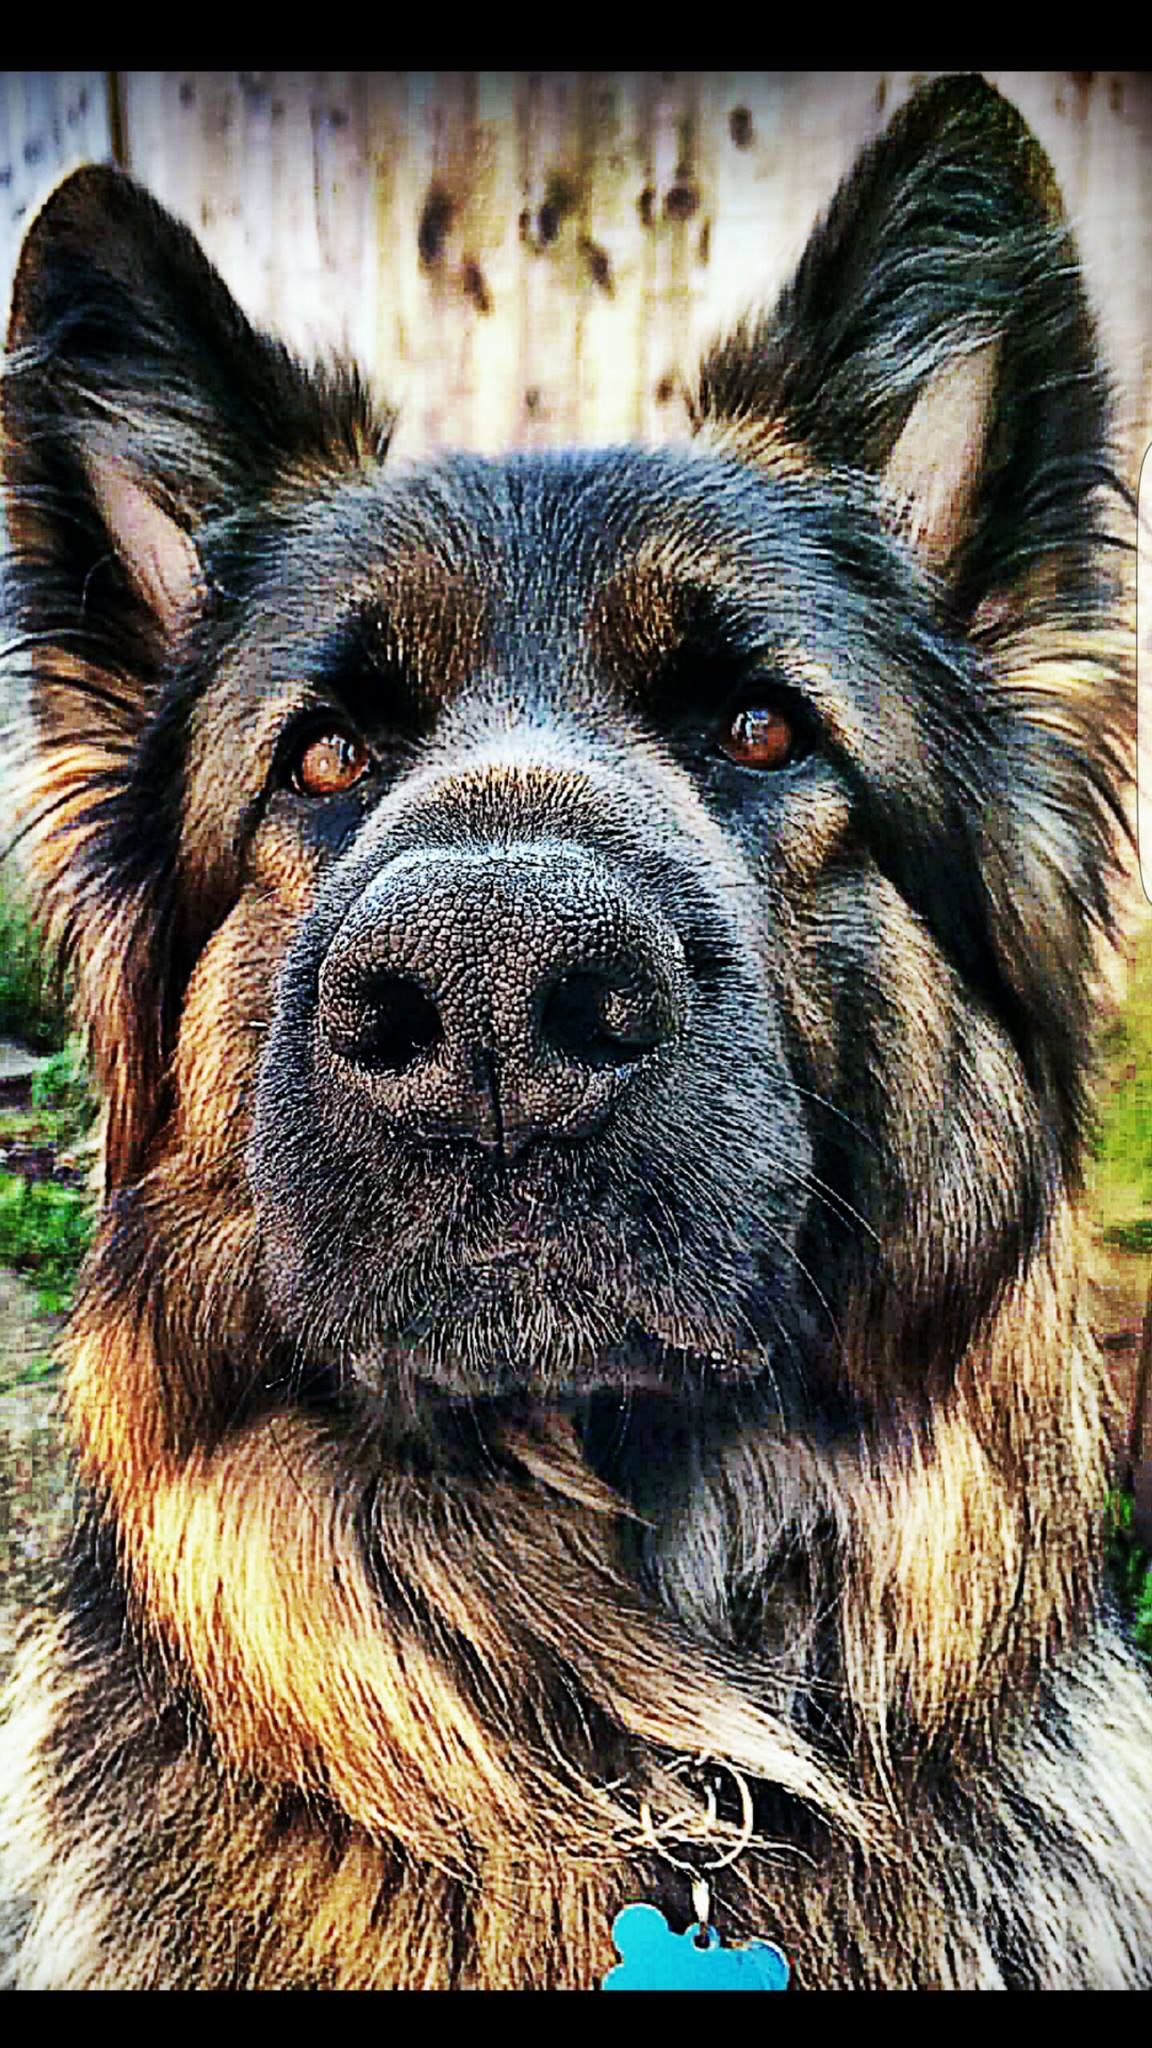 Pin By Rosi Bertelsbeck On Hund With Images Belgian Shepherd Dogs Shepherd Dog